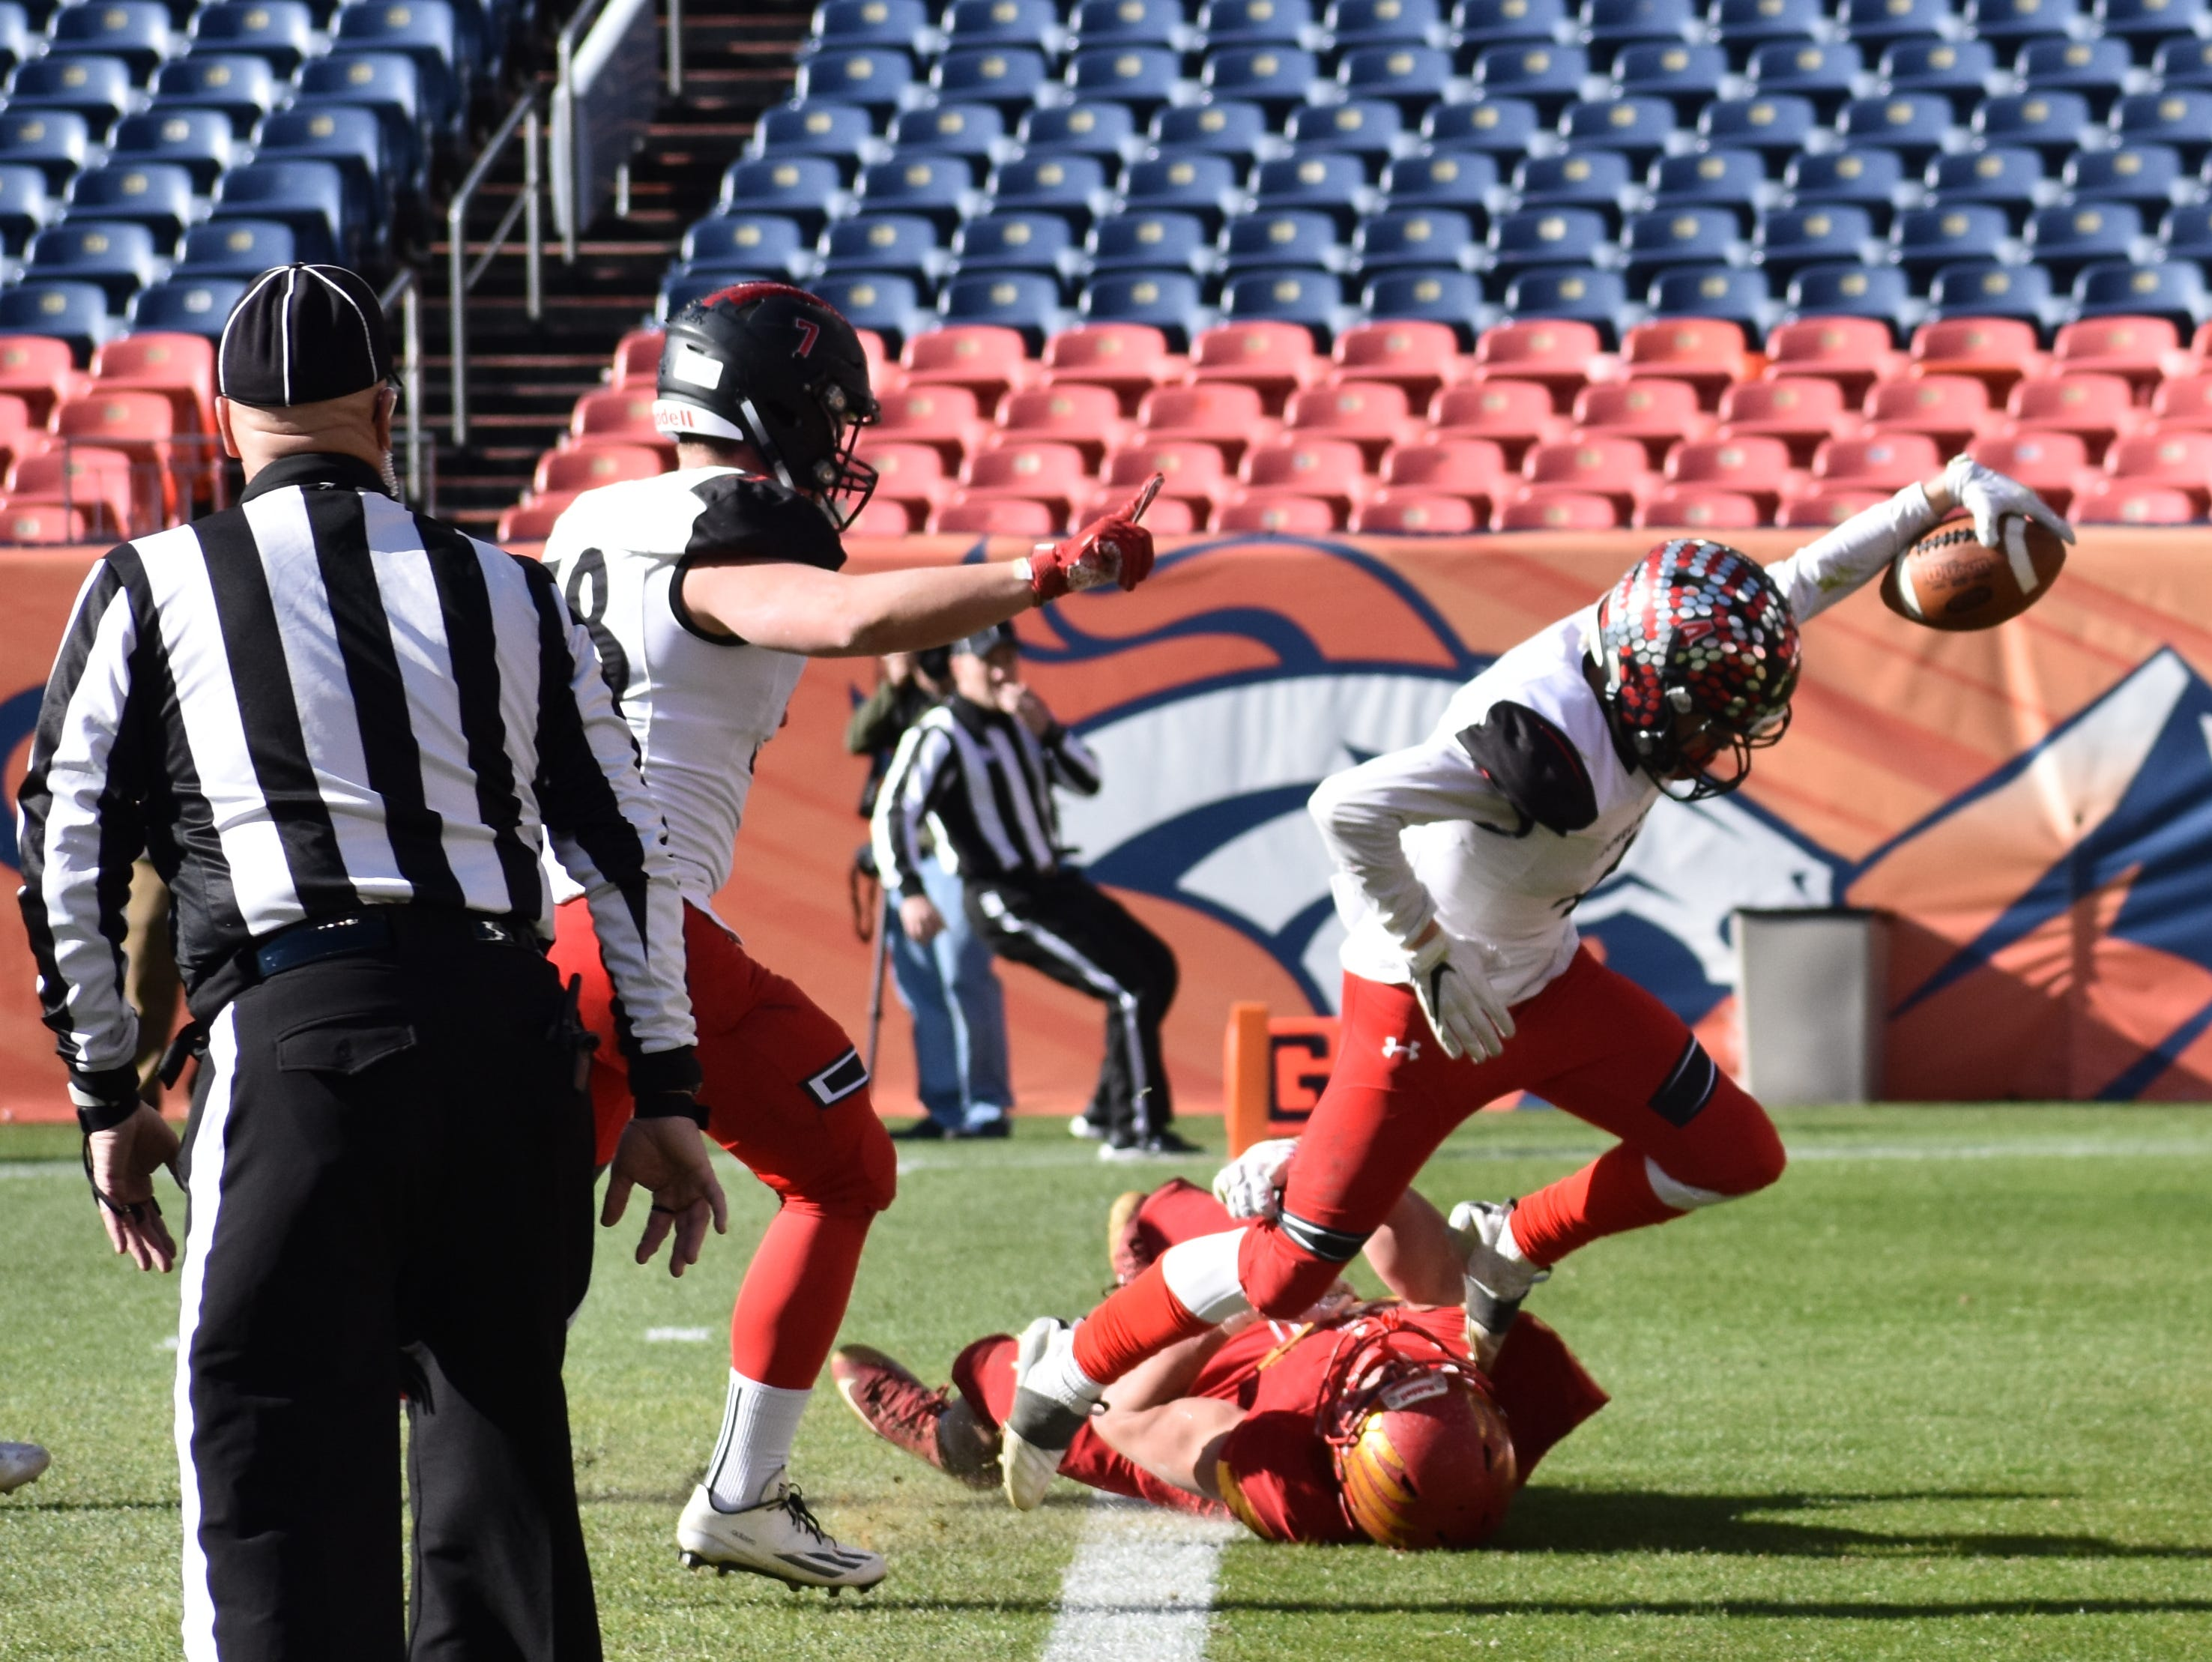 Loveland High football player Cody Rakowsky runs into the end zone for a touchdown during Saturday's Class 4A state championship game in Denver.